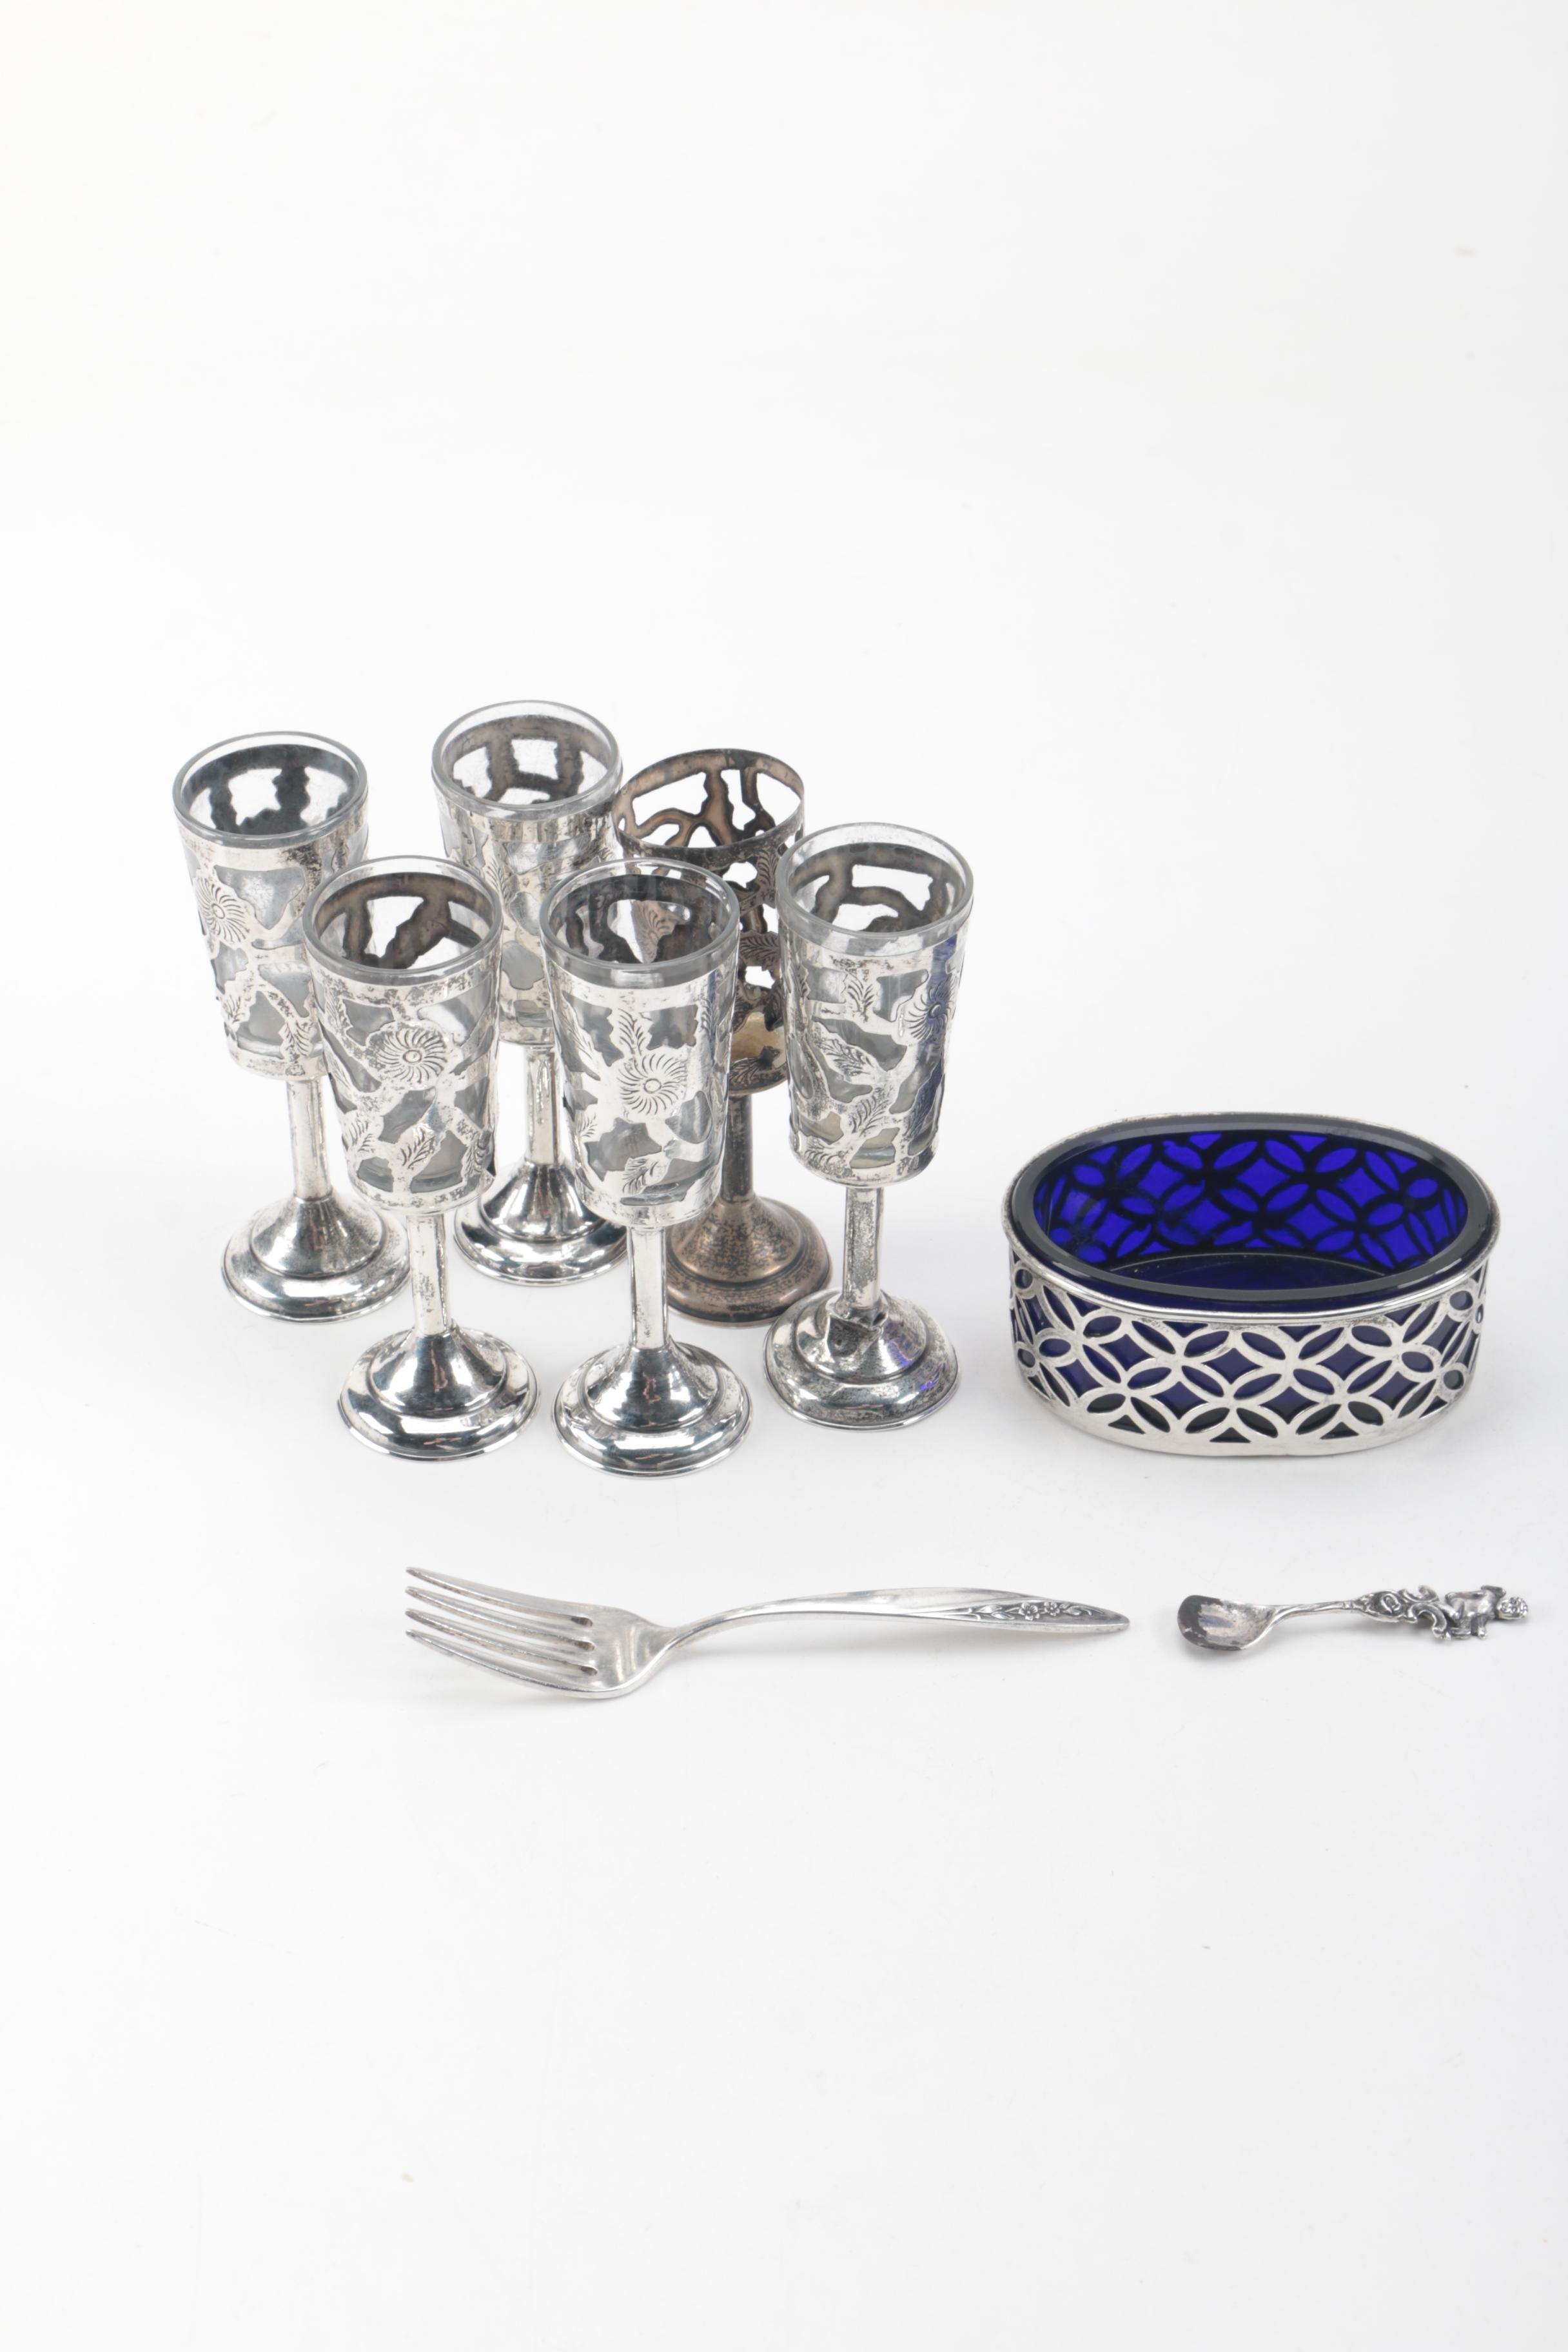 Assorted Sterling Silver Tableware